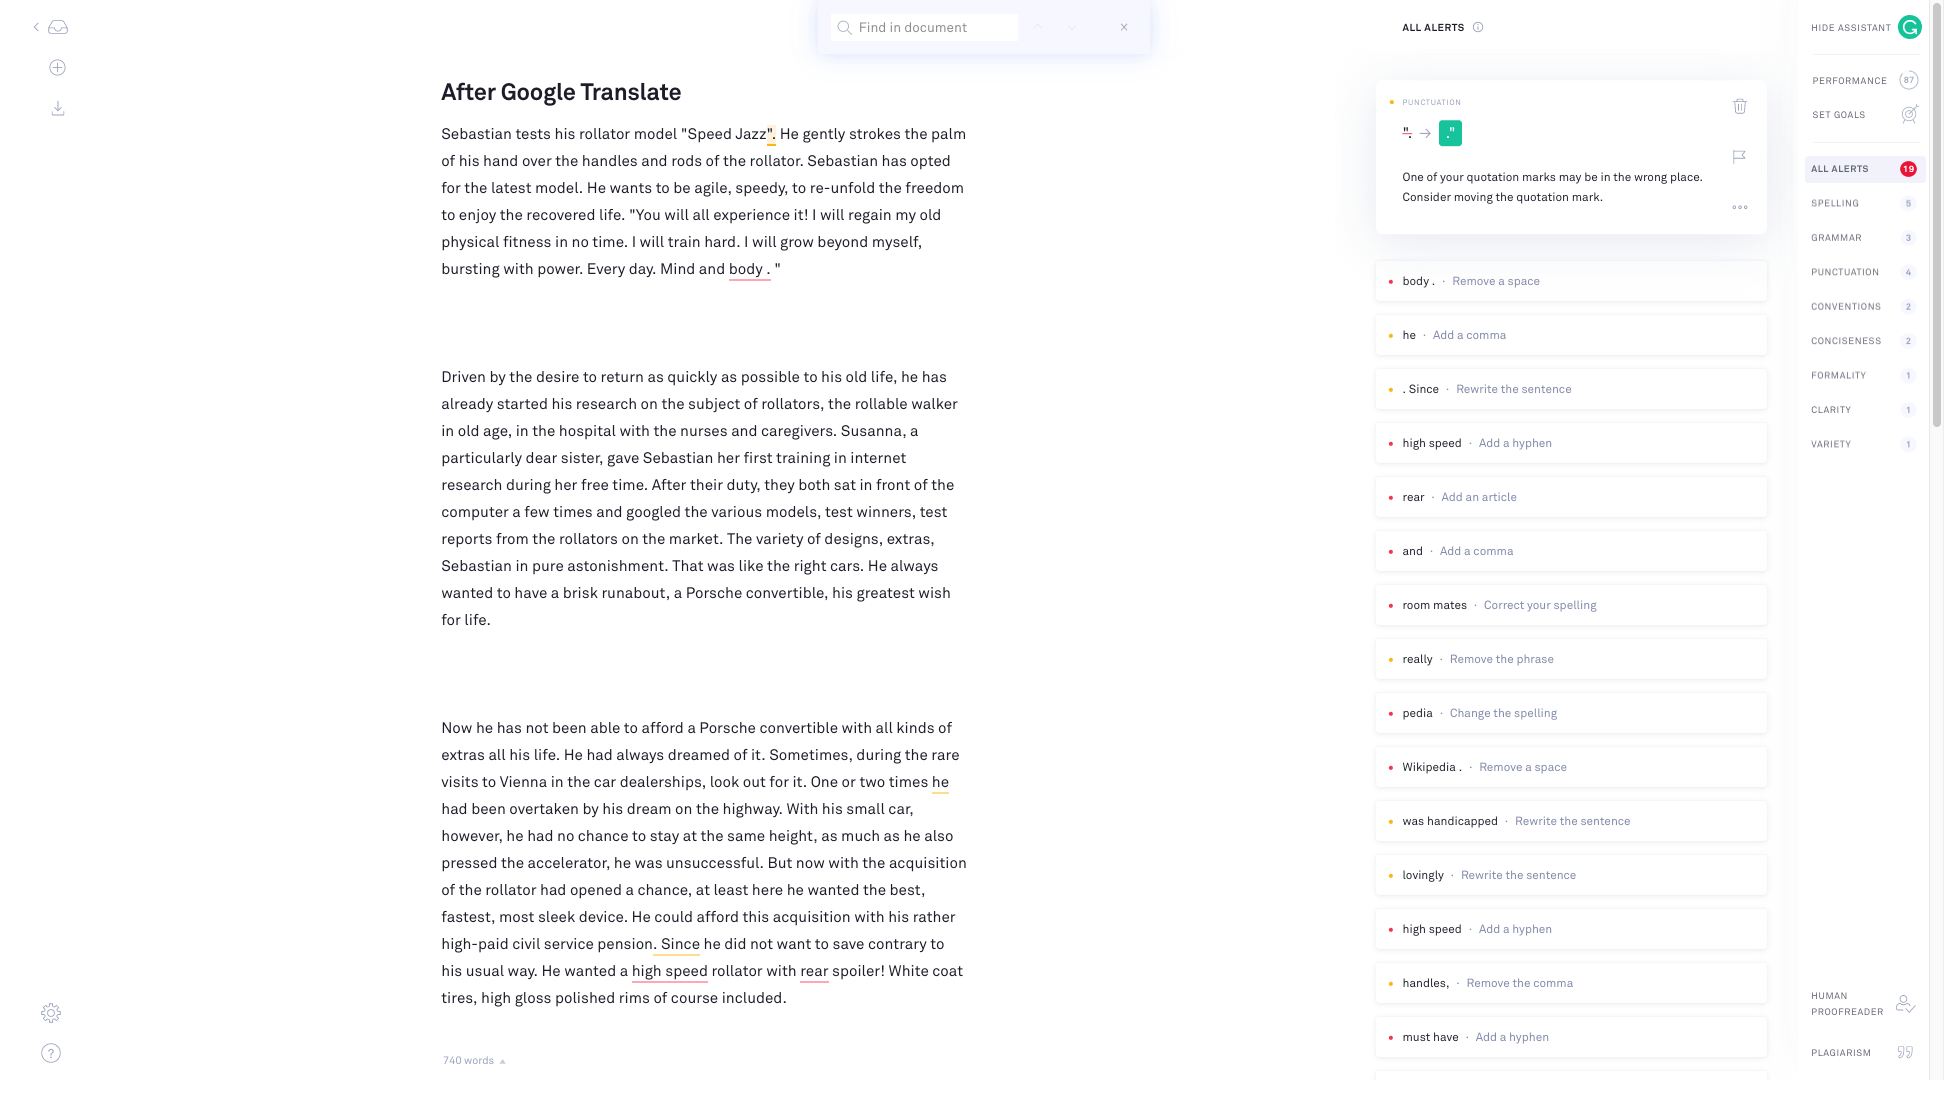 Screenshot of Grammarly alerts after Google Translate